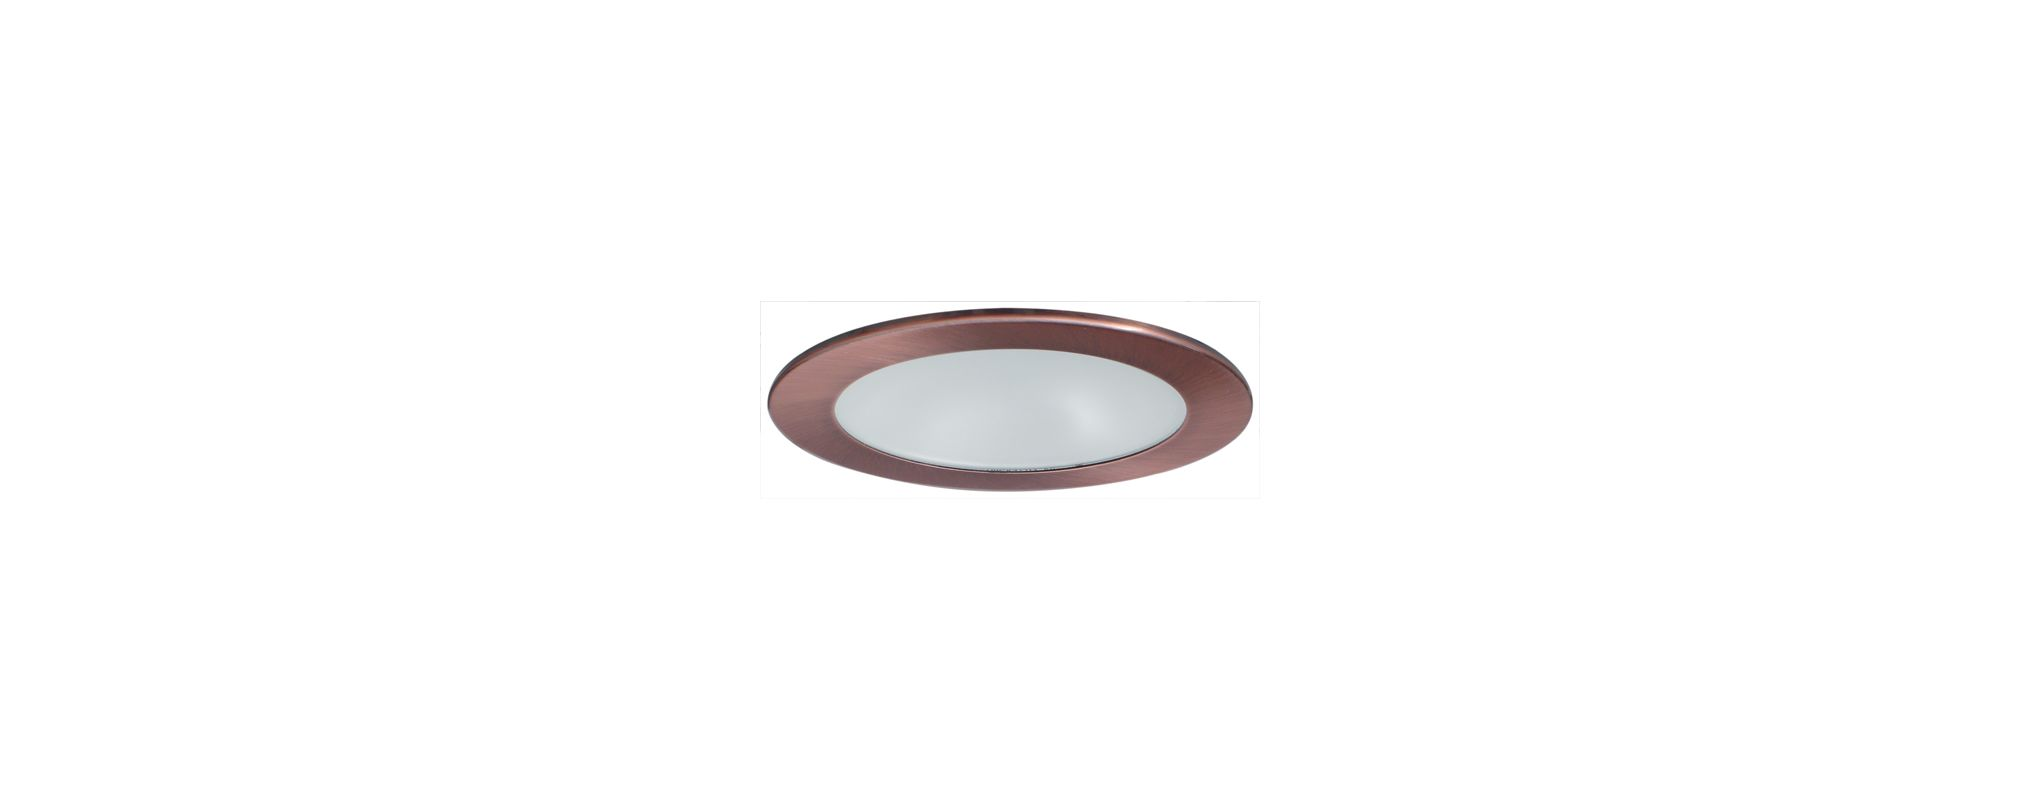 "Elco EL512 5"" Shower Trim with Albalite Lens Copper Recessed Lights"